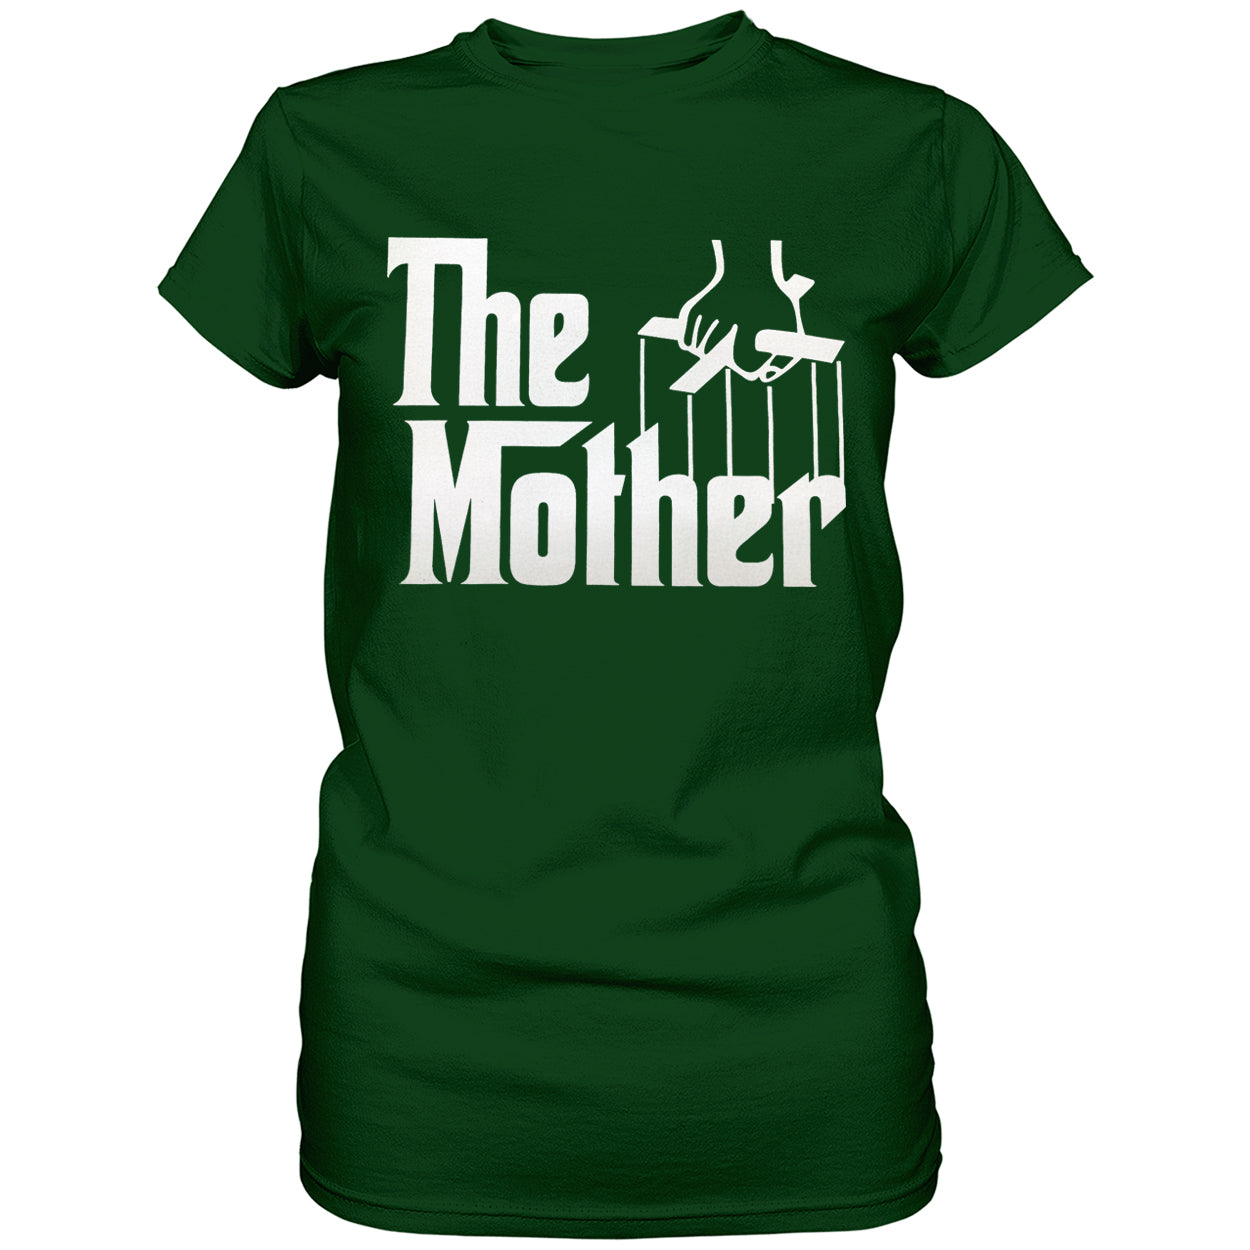 The Mother Funny Ladies T-shirt